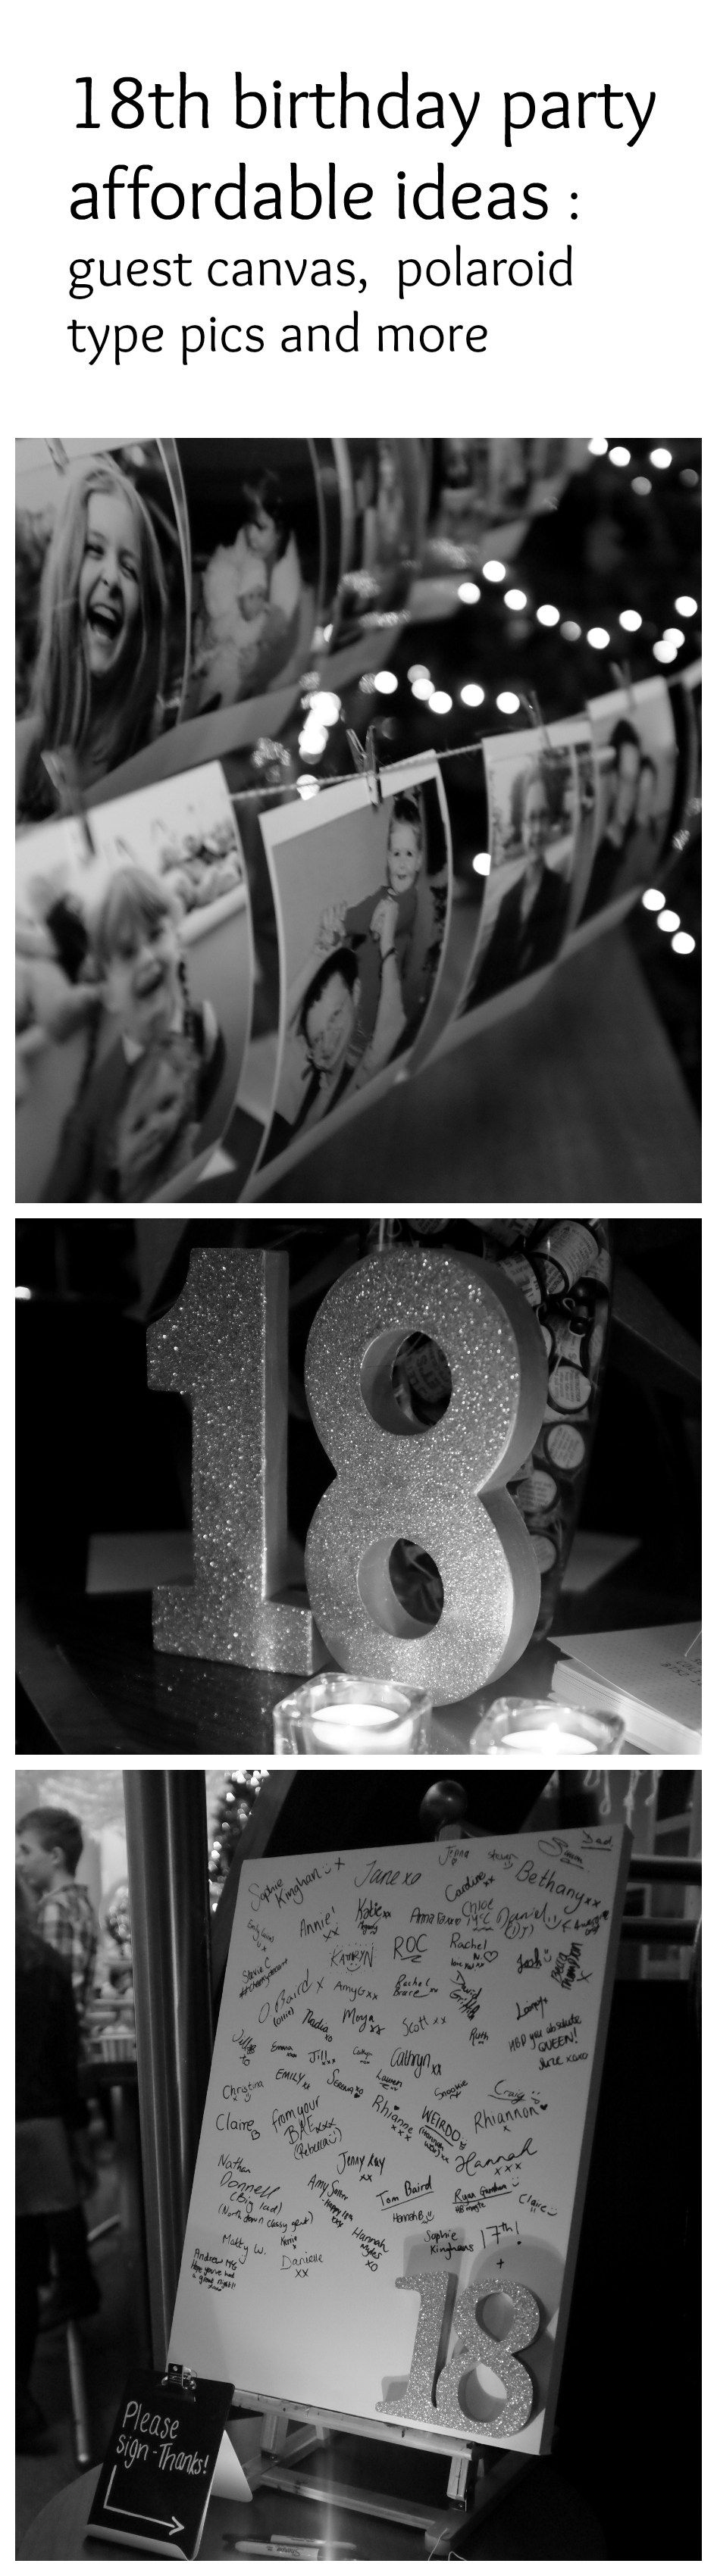 Some creative ideas for planning an 18th birthday party 18th